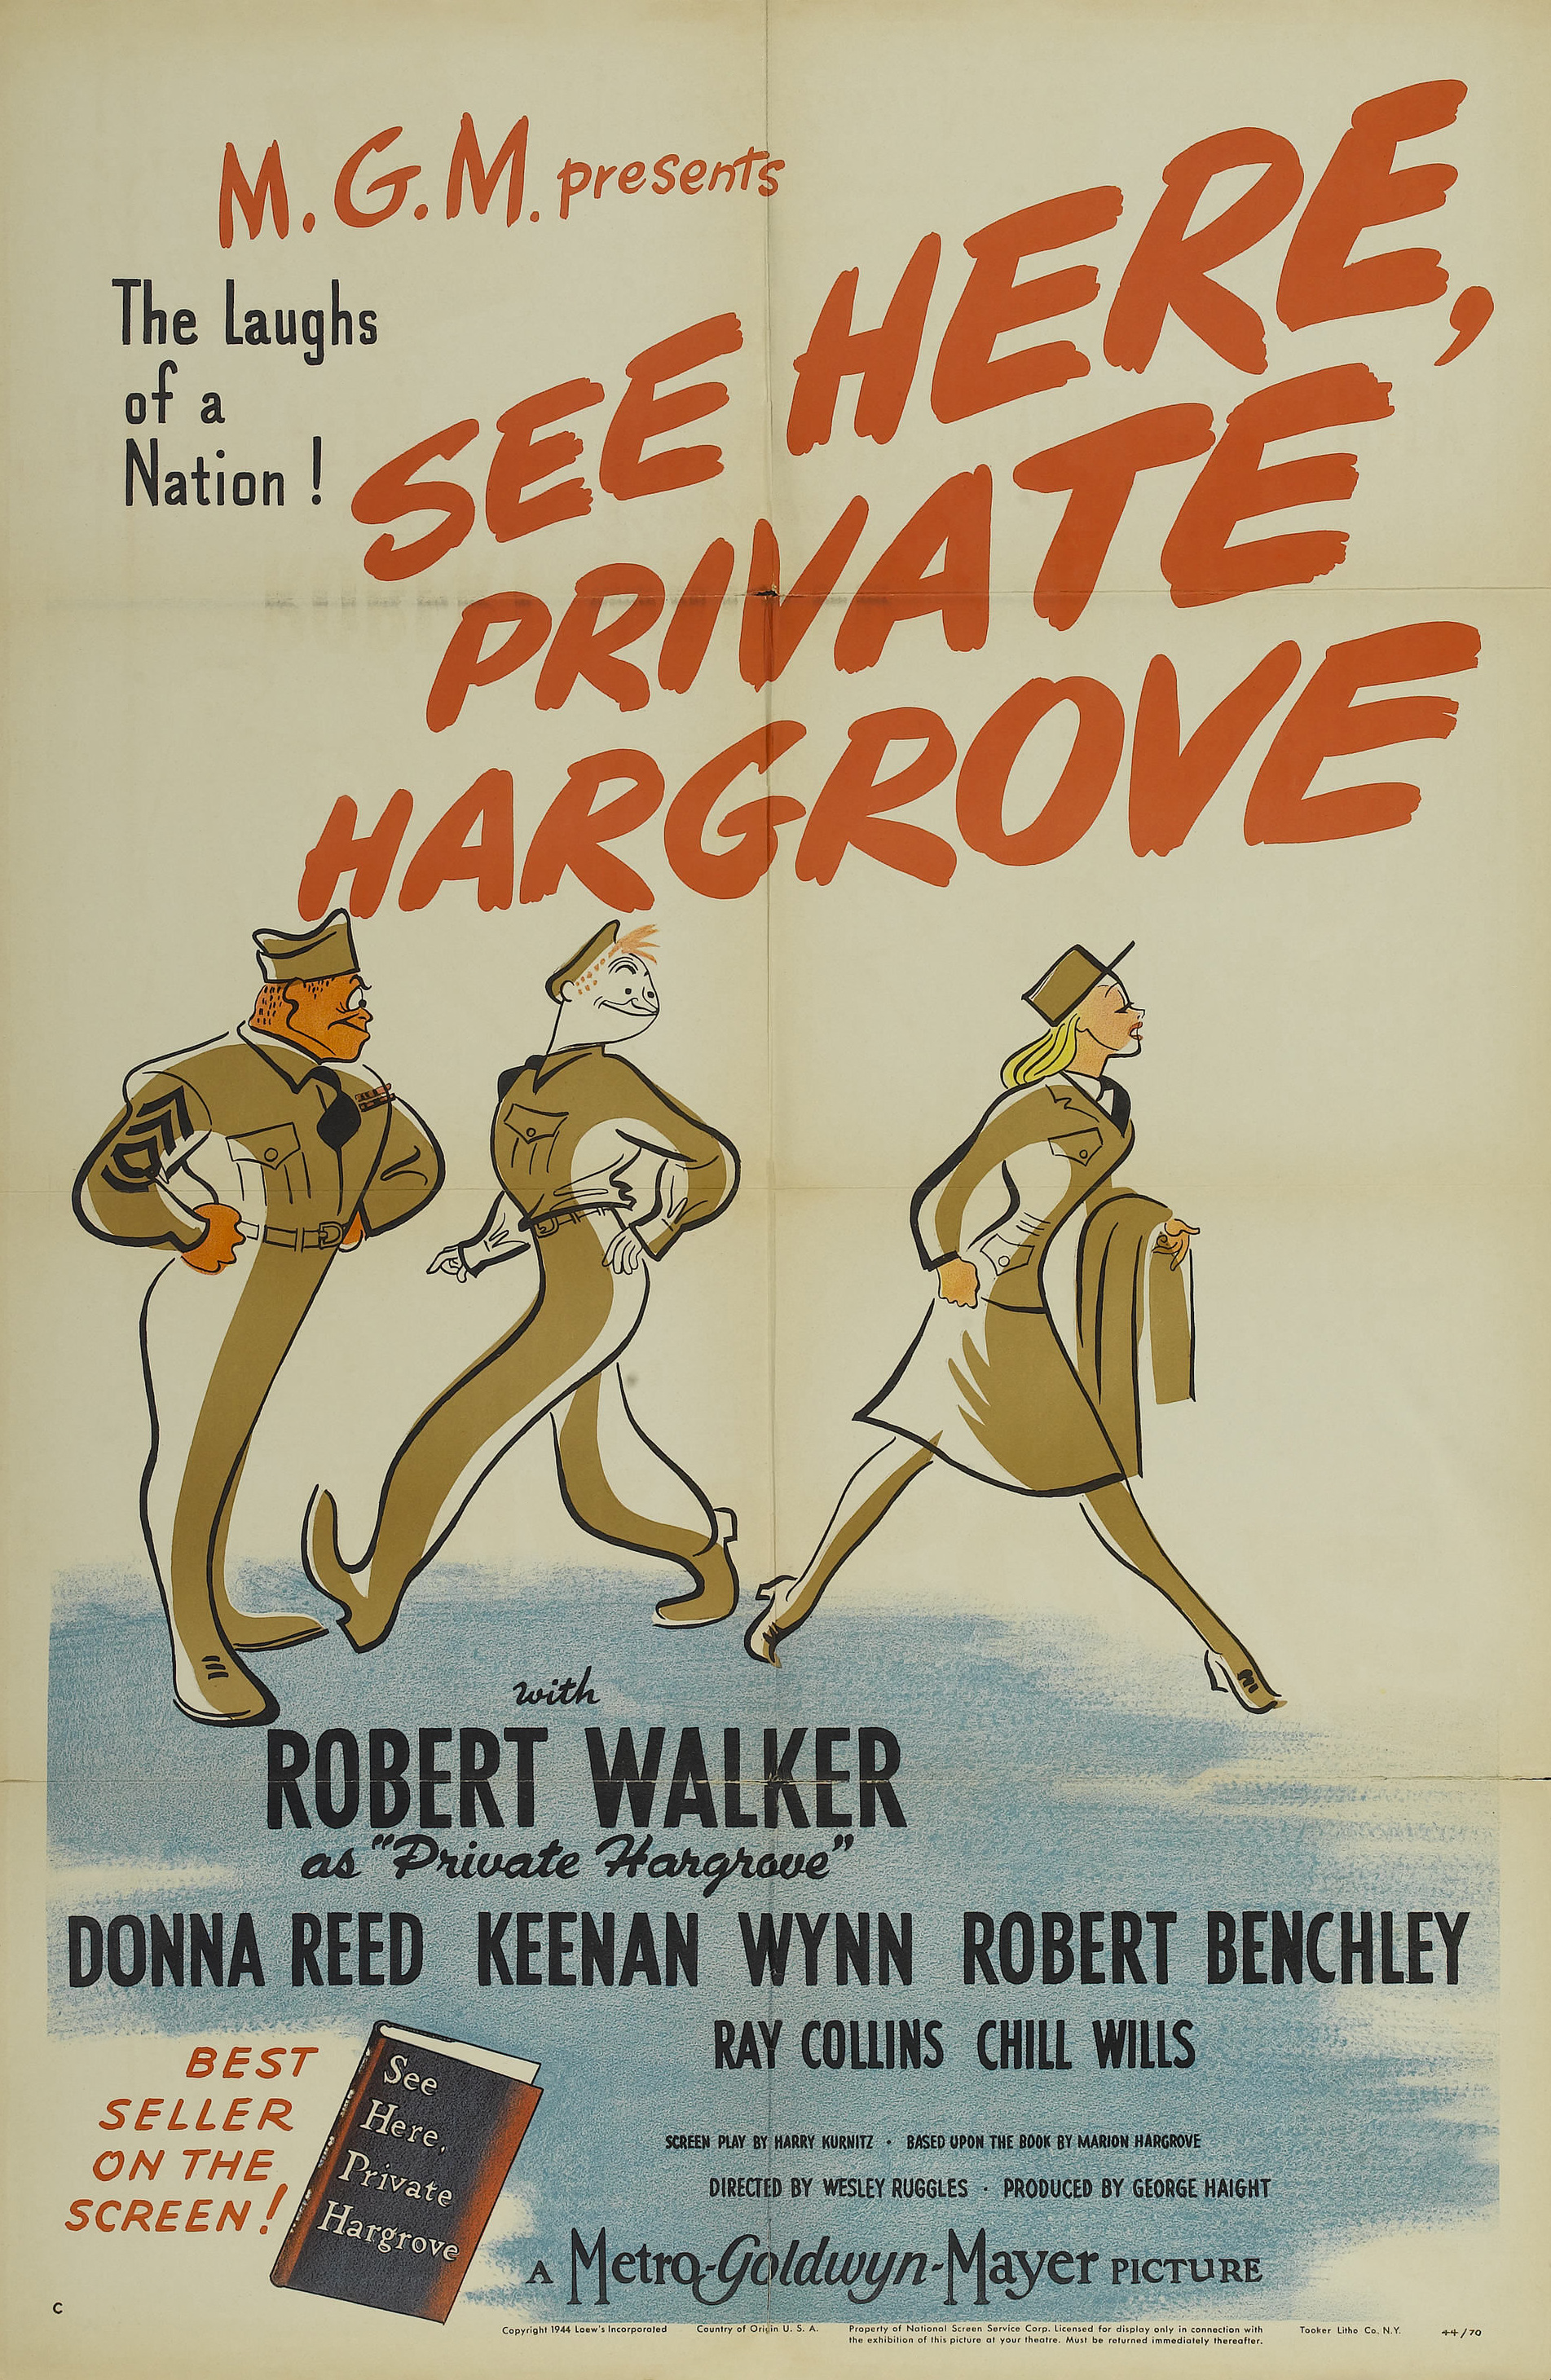 See here private hargrove 1944 stars robert walker donna reed